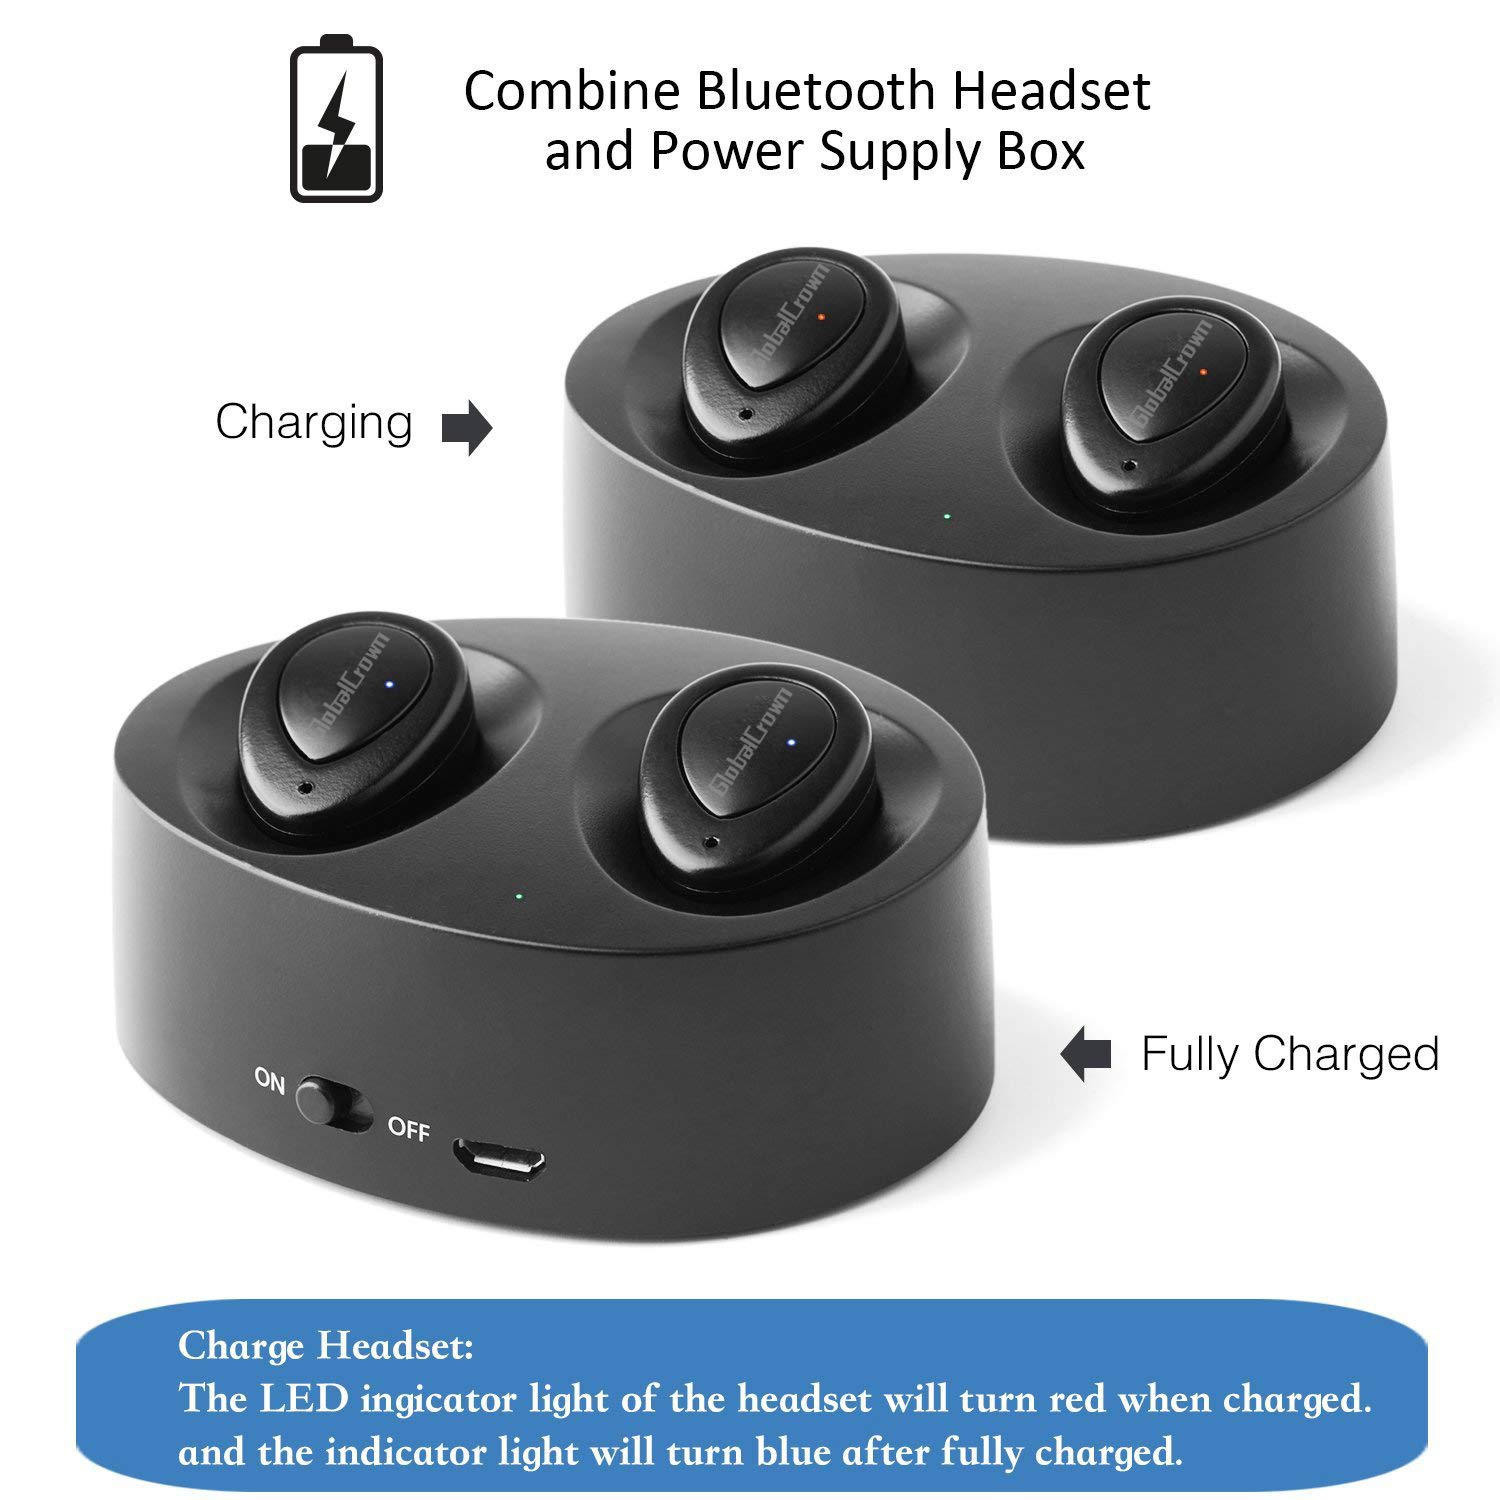 Globalcrown Bluetooth Headphones Wireless Tws K2 Twins Stereo Bt Pleasequick Question On Light Fixture Wiring Pics Attached True Earbuds Bluetoothmini Invisible Earphones Headsets With